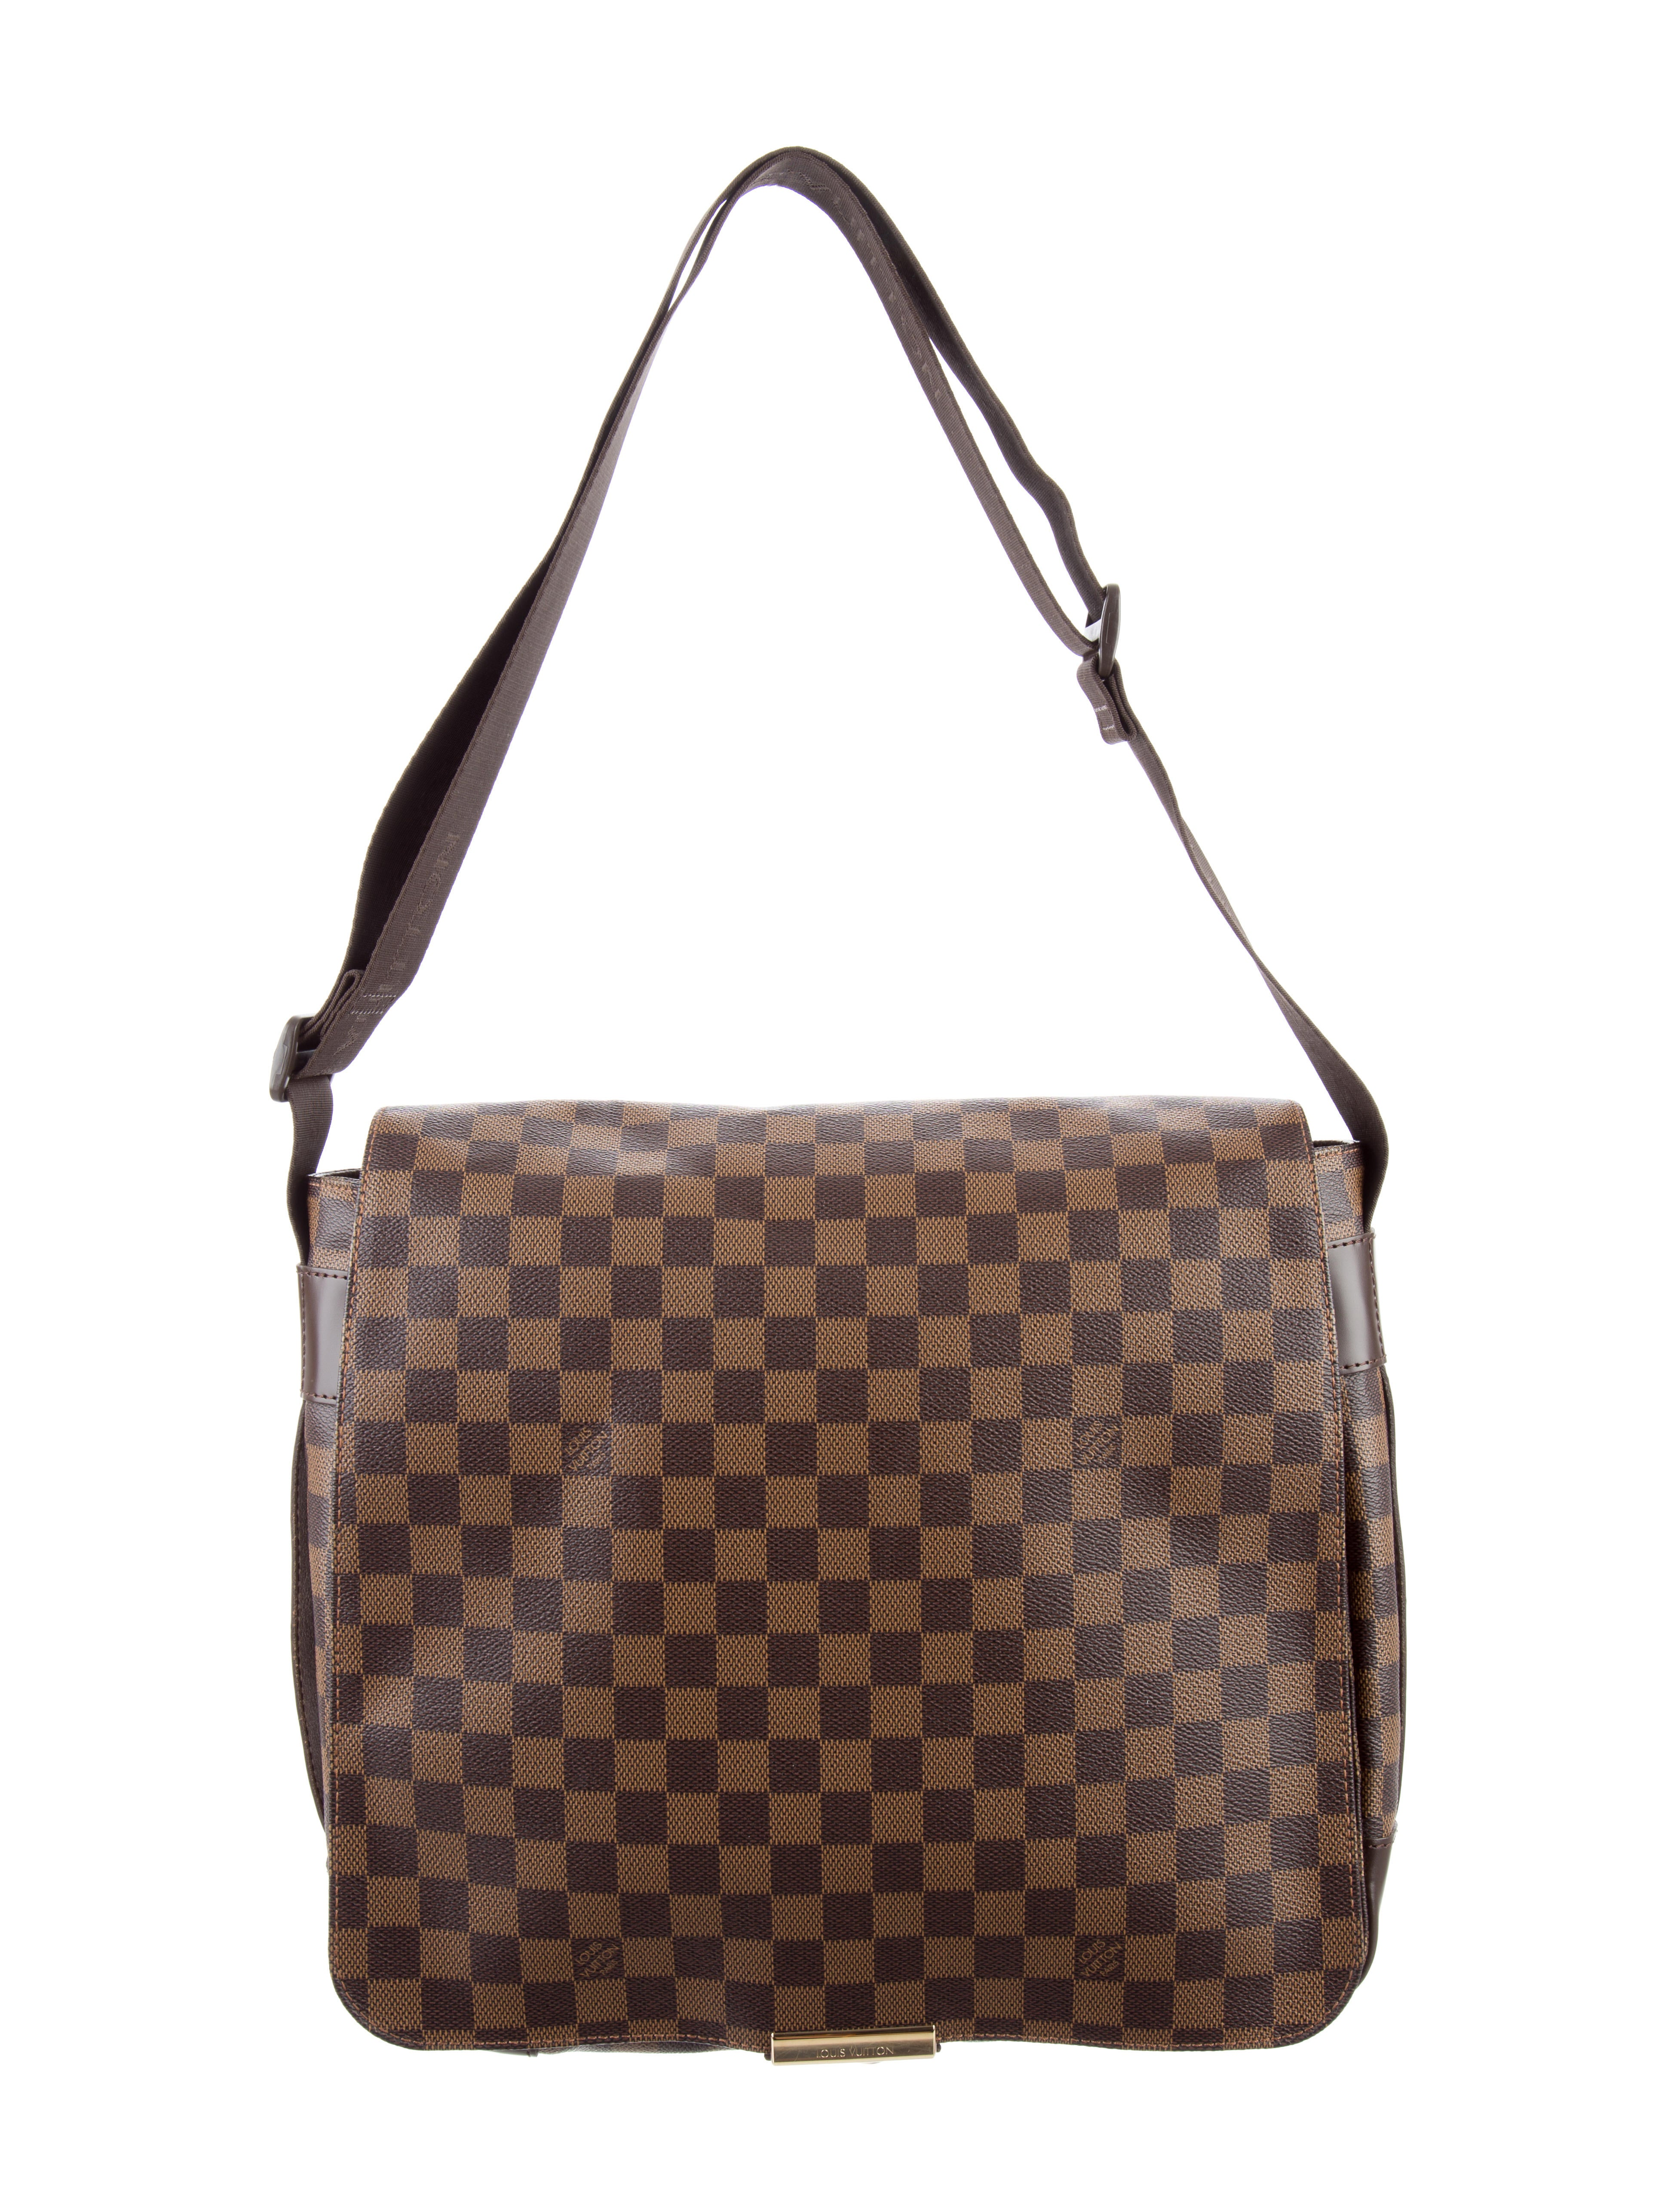 Wonderful Louis Vuitton Women Handbag Shoulder Bag Messenger Bags For Sale